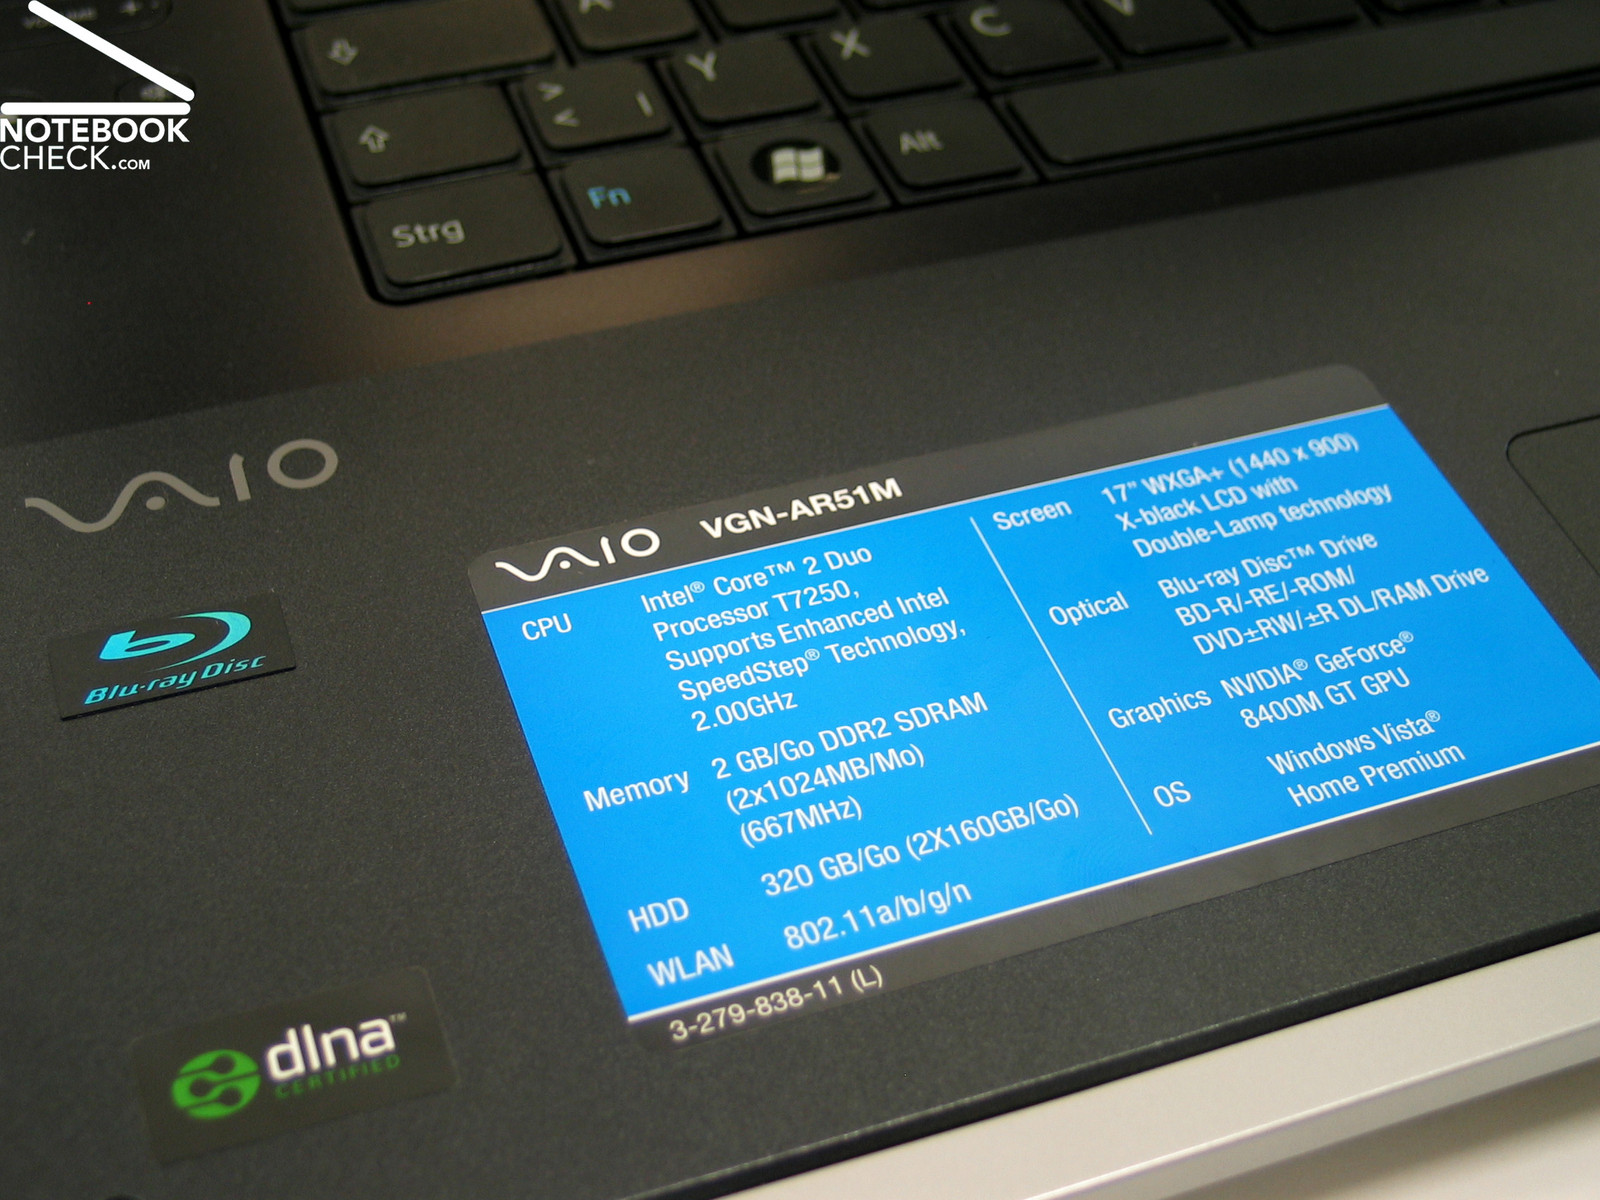 DOWNLOAD DRIVER: SONY VAIO VGN-AR51E